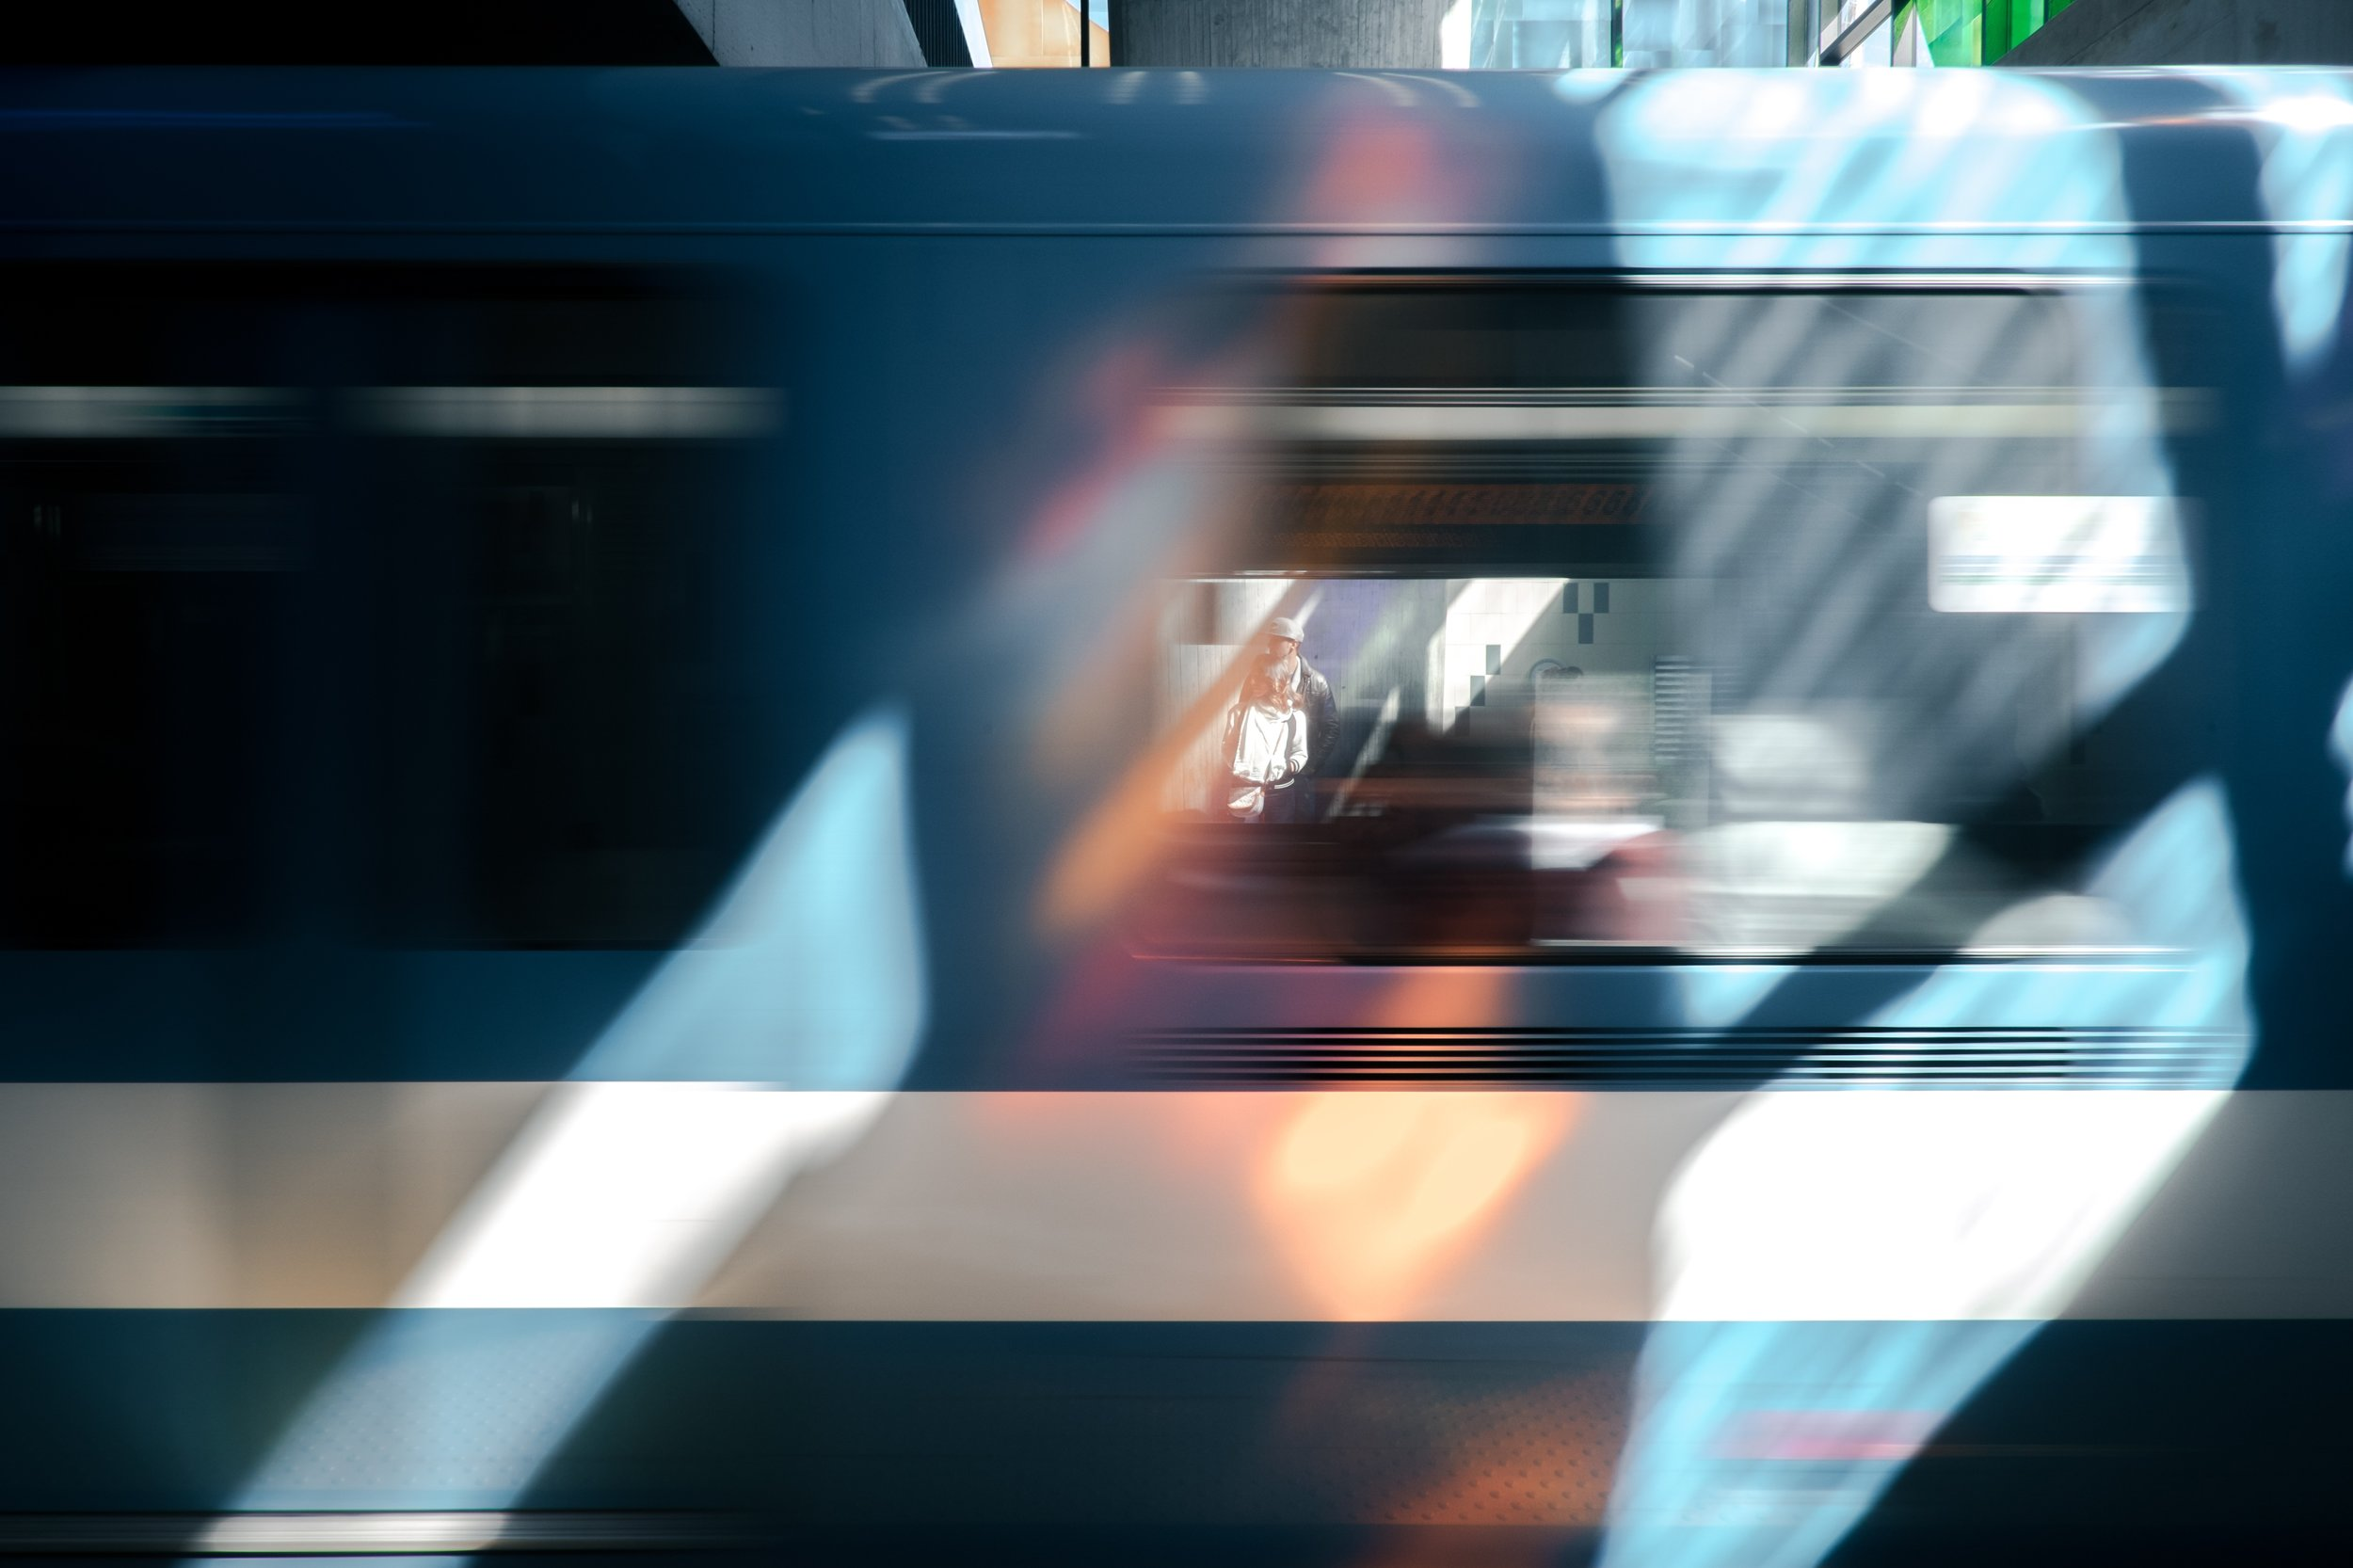 light-blur-railway-railroad-glass-train-874137-pxhere.com_.jpg